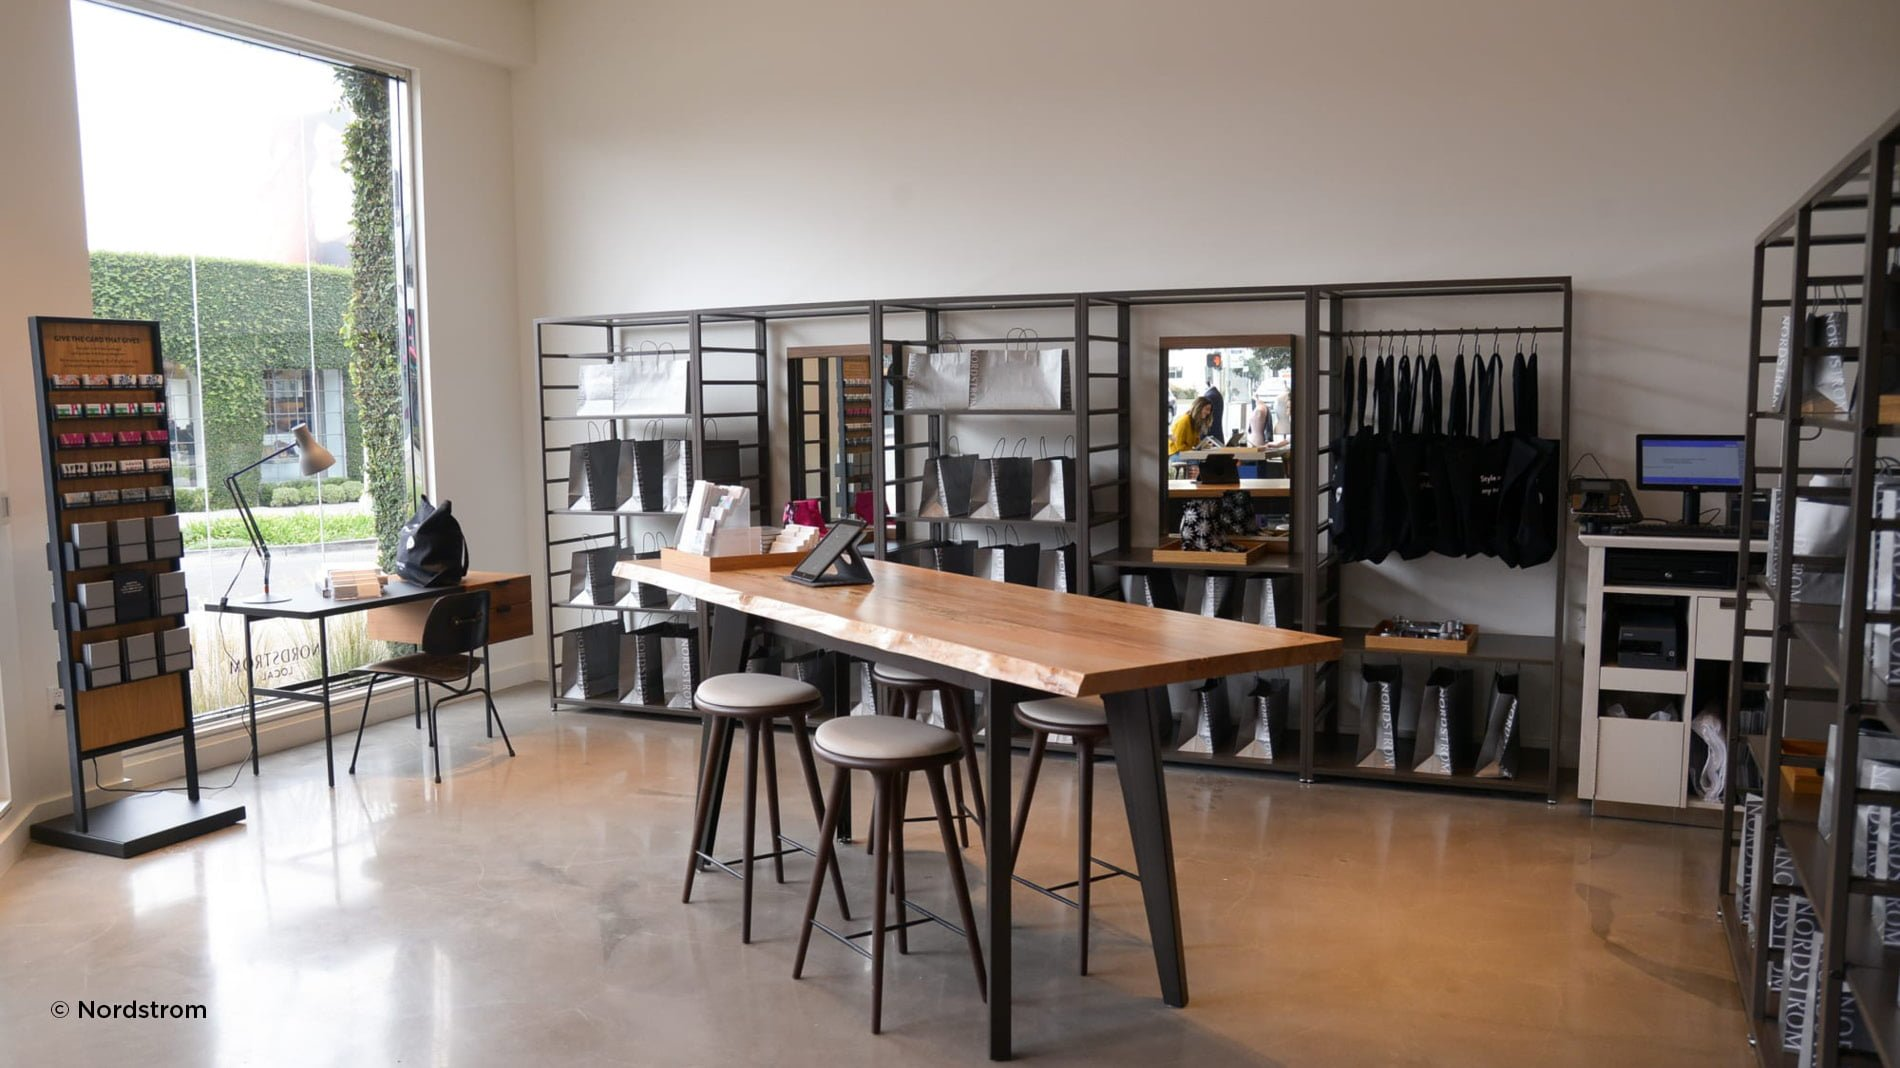 Innovative Nordstrom local concept store with high table